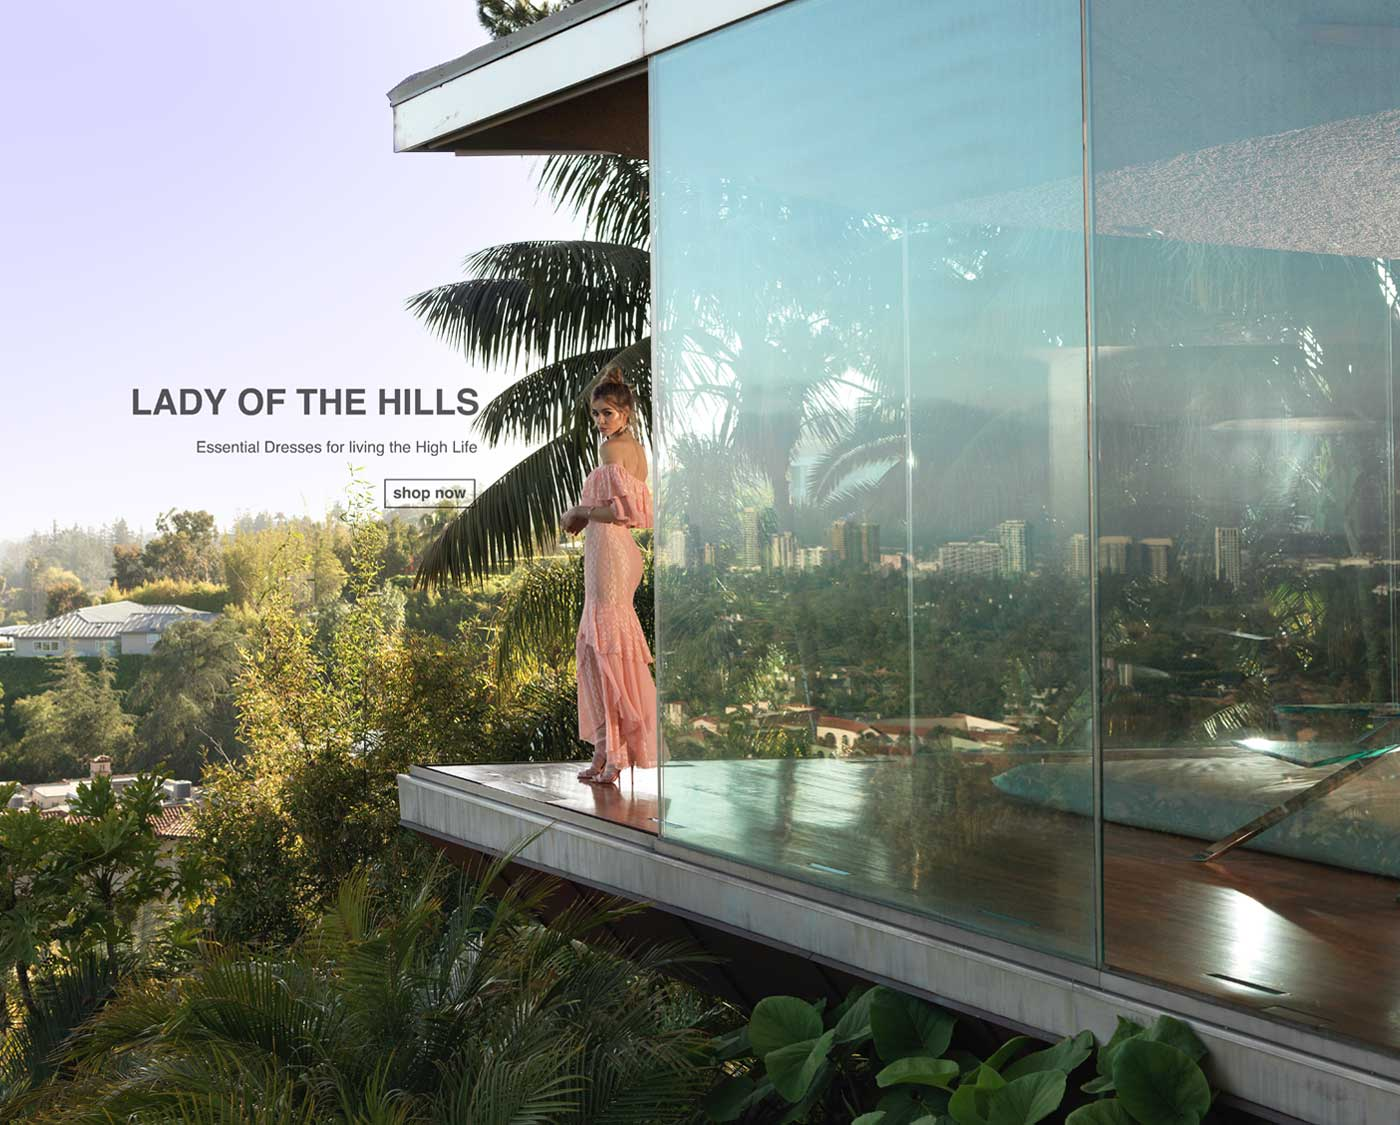 LADY OF THE HILLS